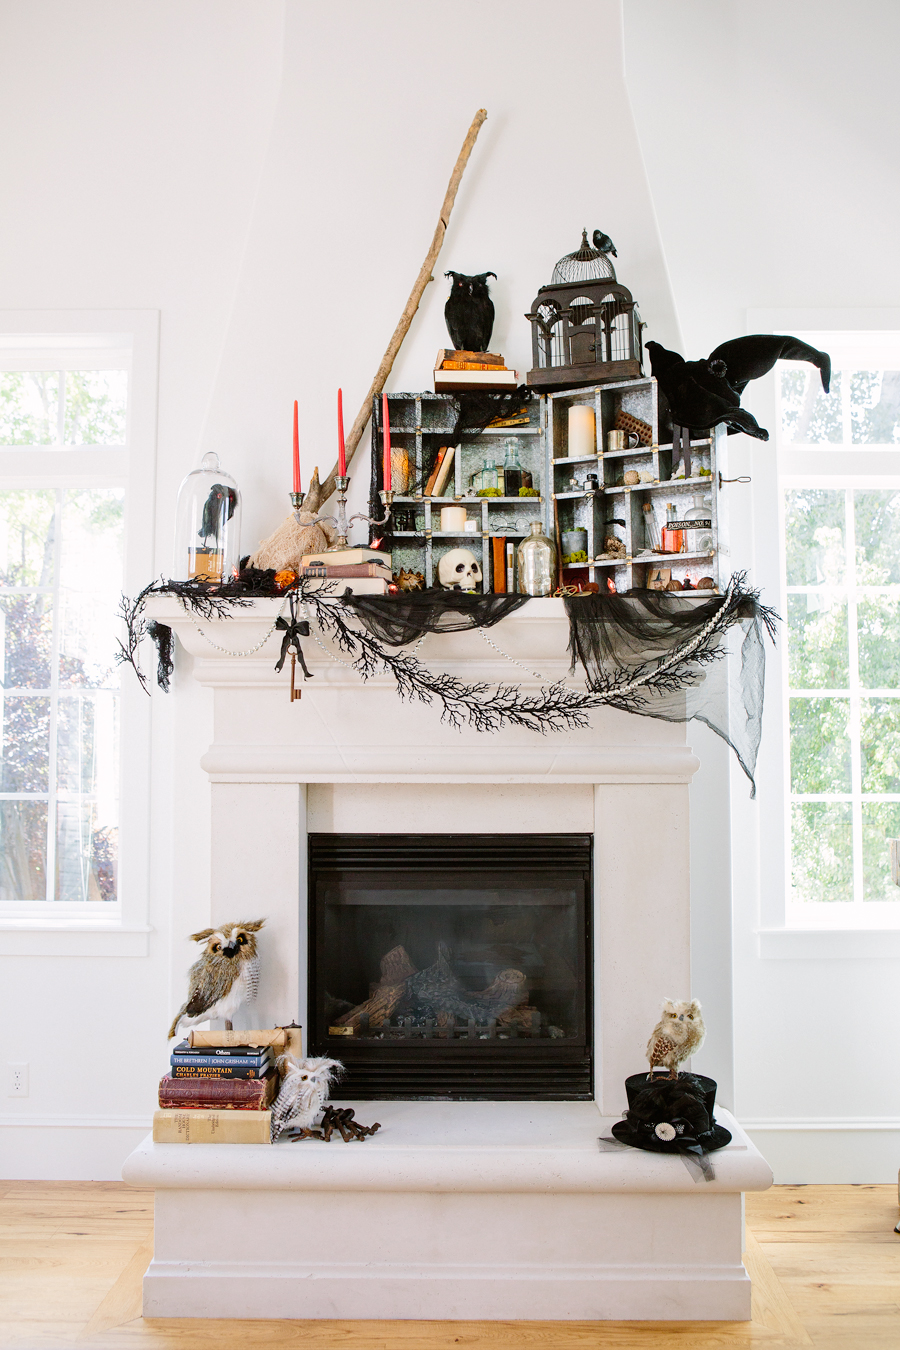 Decorate House For Halloween: 10 Creative Places To Decorate Your House For Halloween